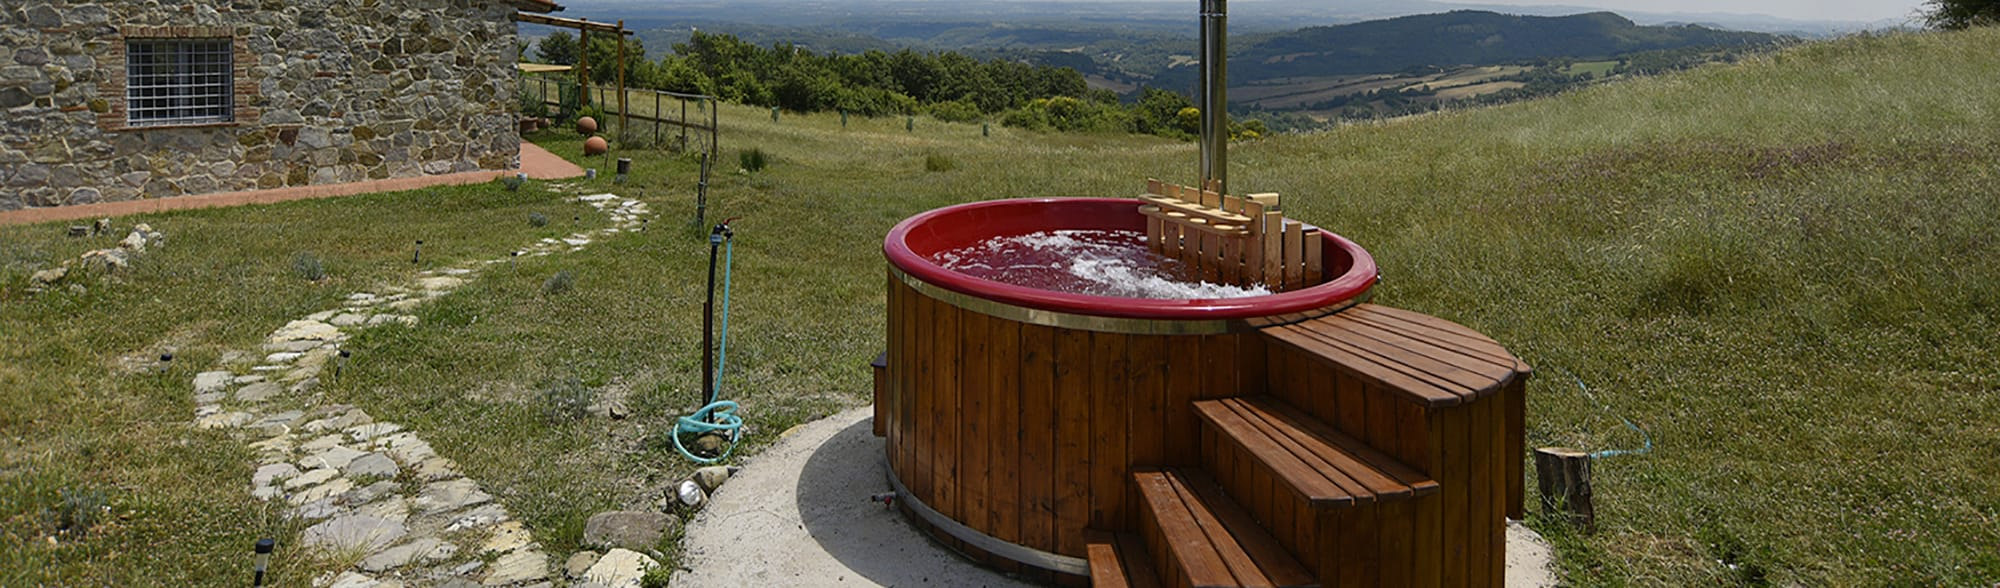 Spa all'aperto Saune Hot Tube Spa Tinozza idromassaggio Pod Bungalow